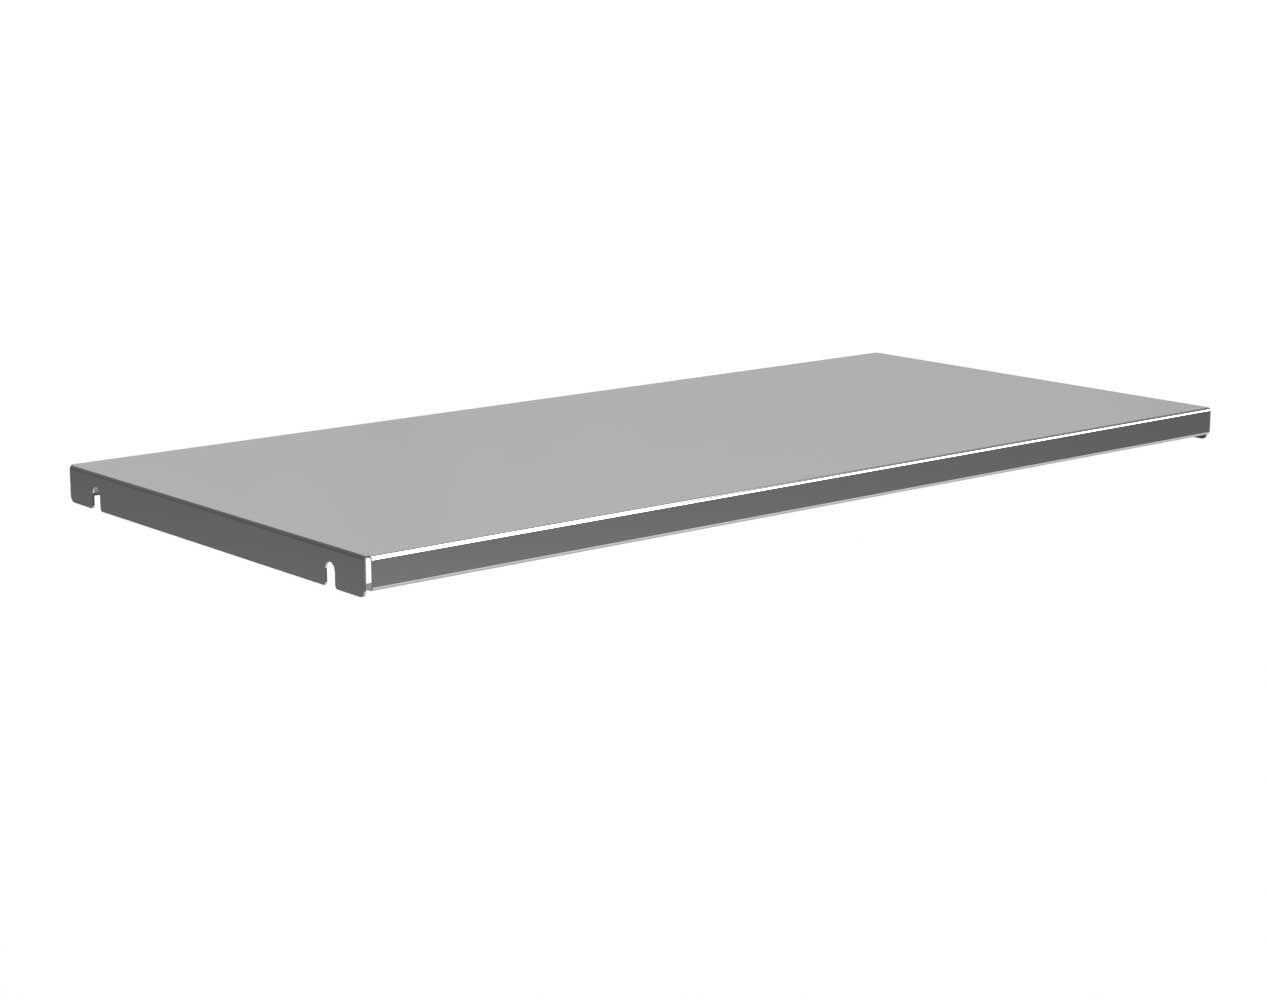 Stainless Steel Adjustable Shelf for 36 in. W x 24 in. D Cabinet